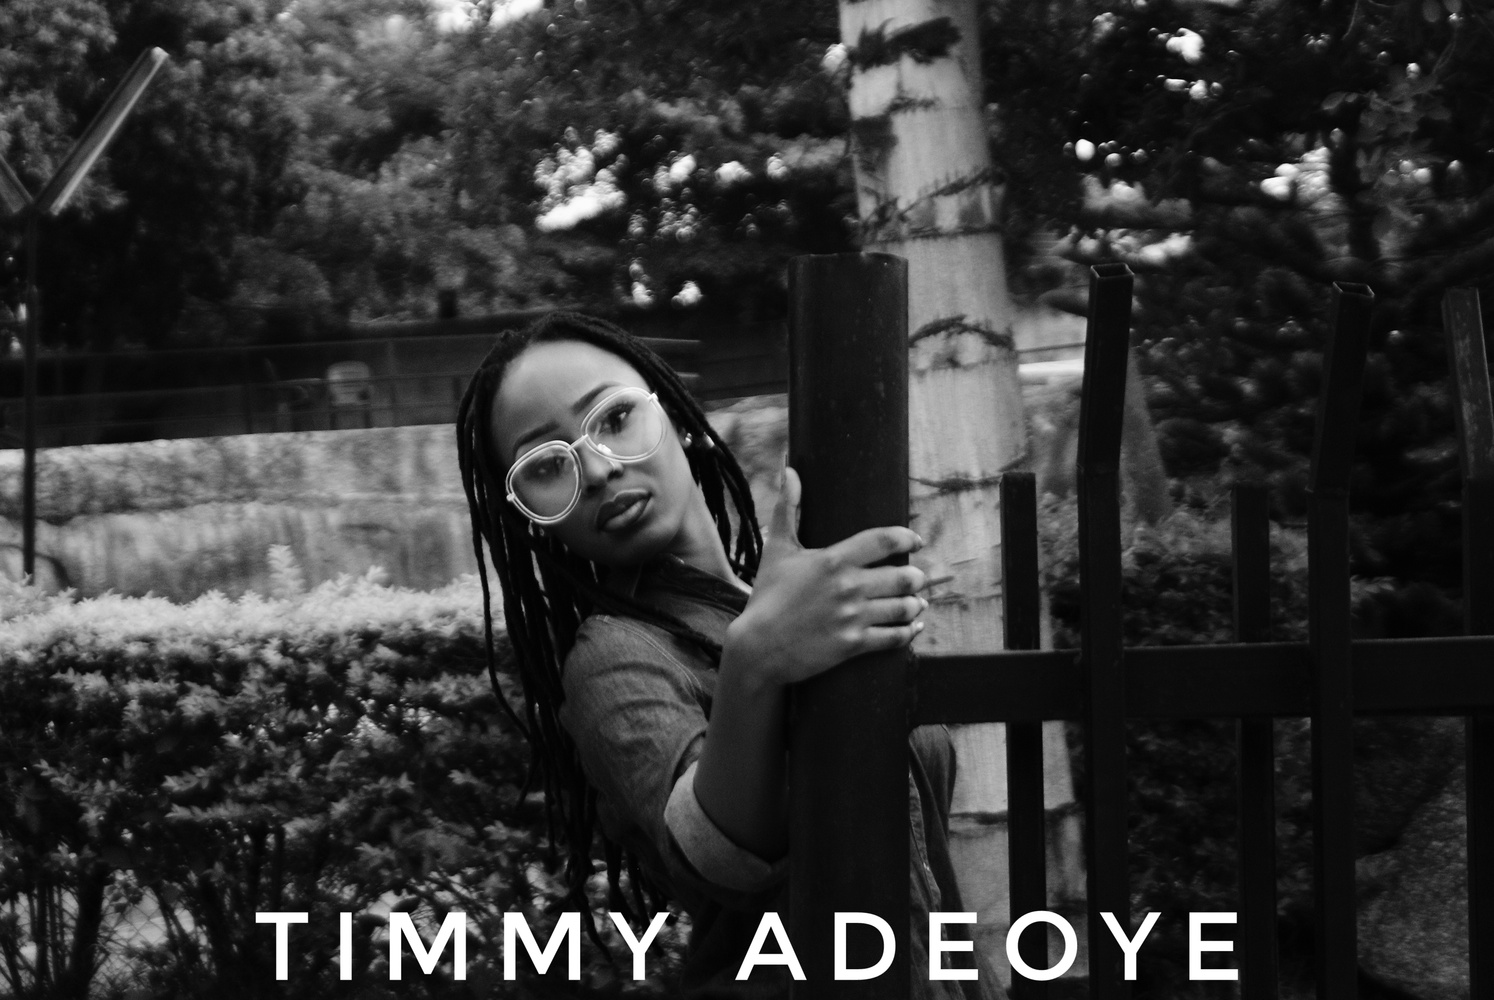 take a view from the other side of things by Timmy Adeoye